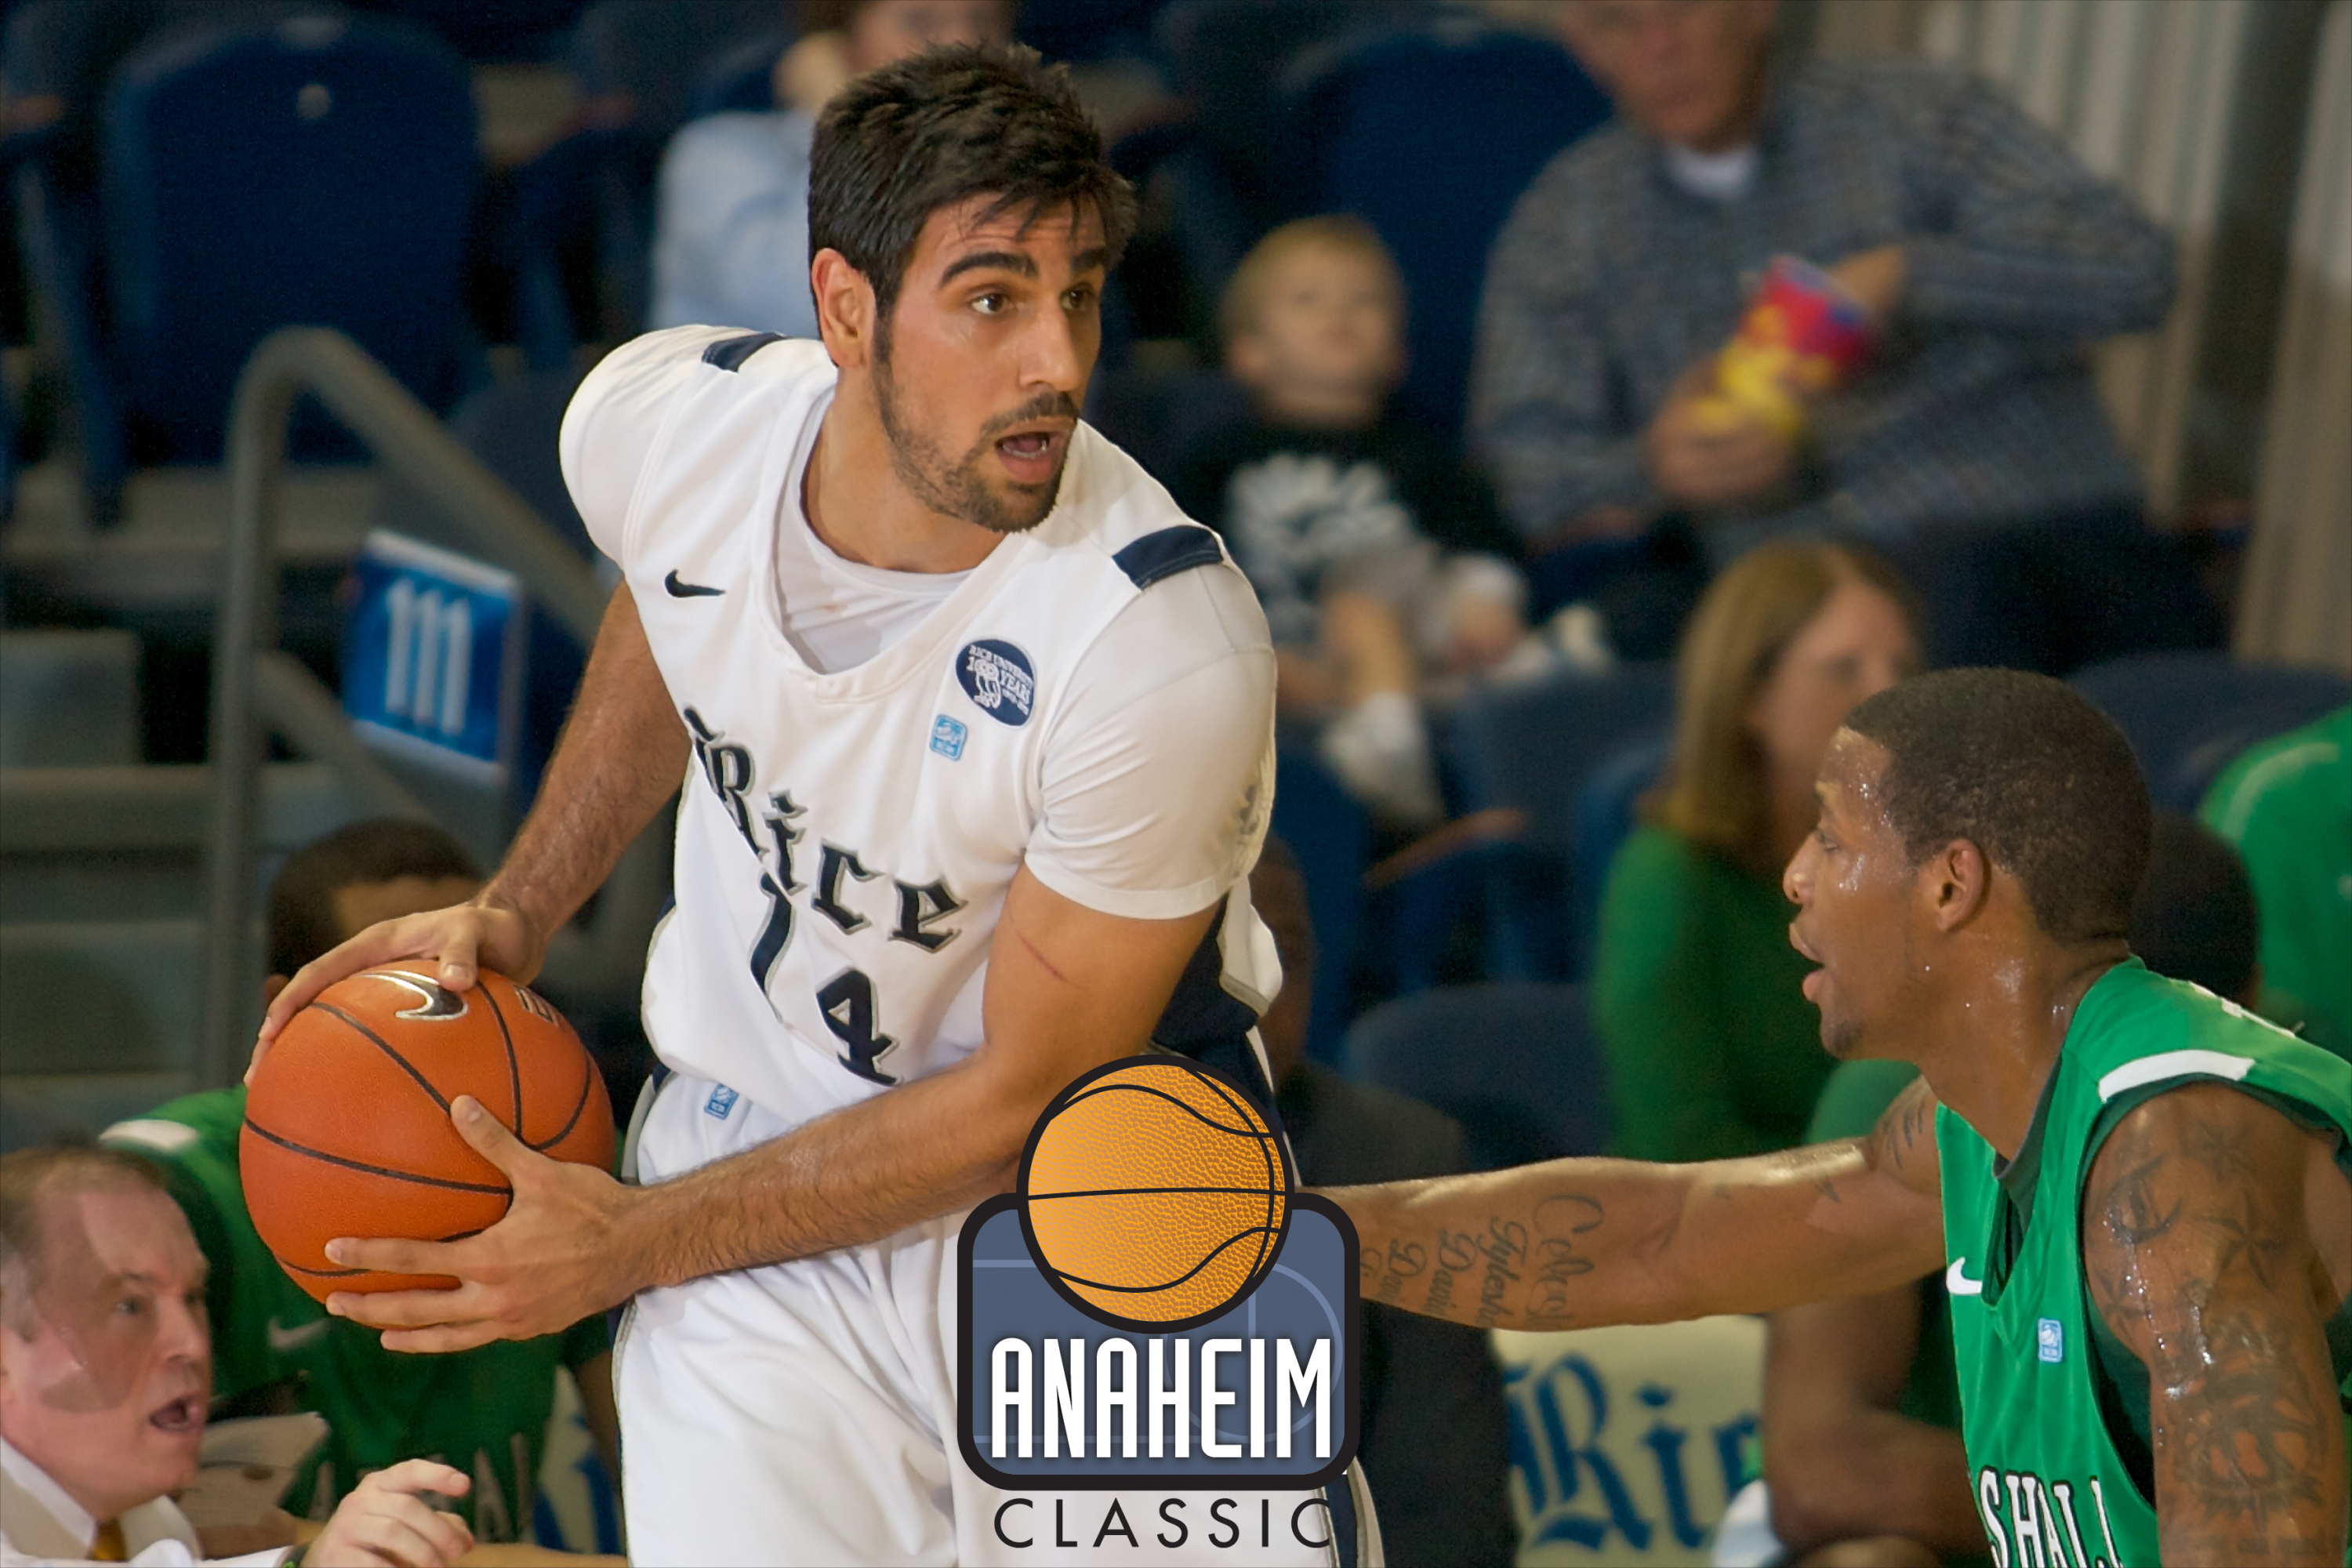 Rice will play in the 2012 Anaheim Classic over the Thanksgiving weekend.